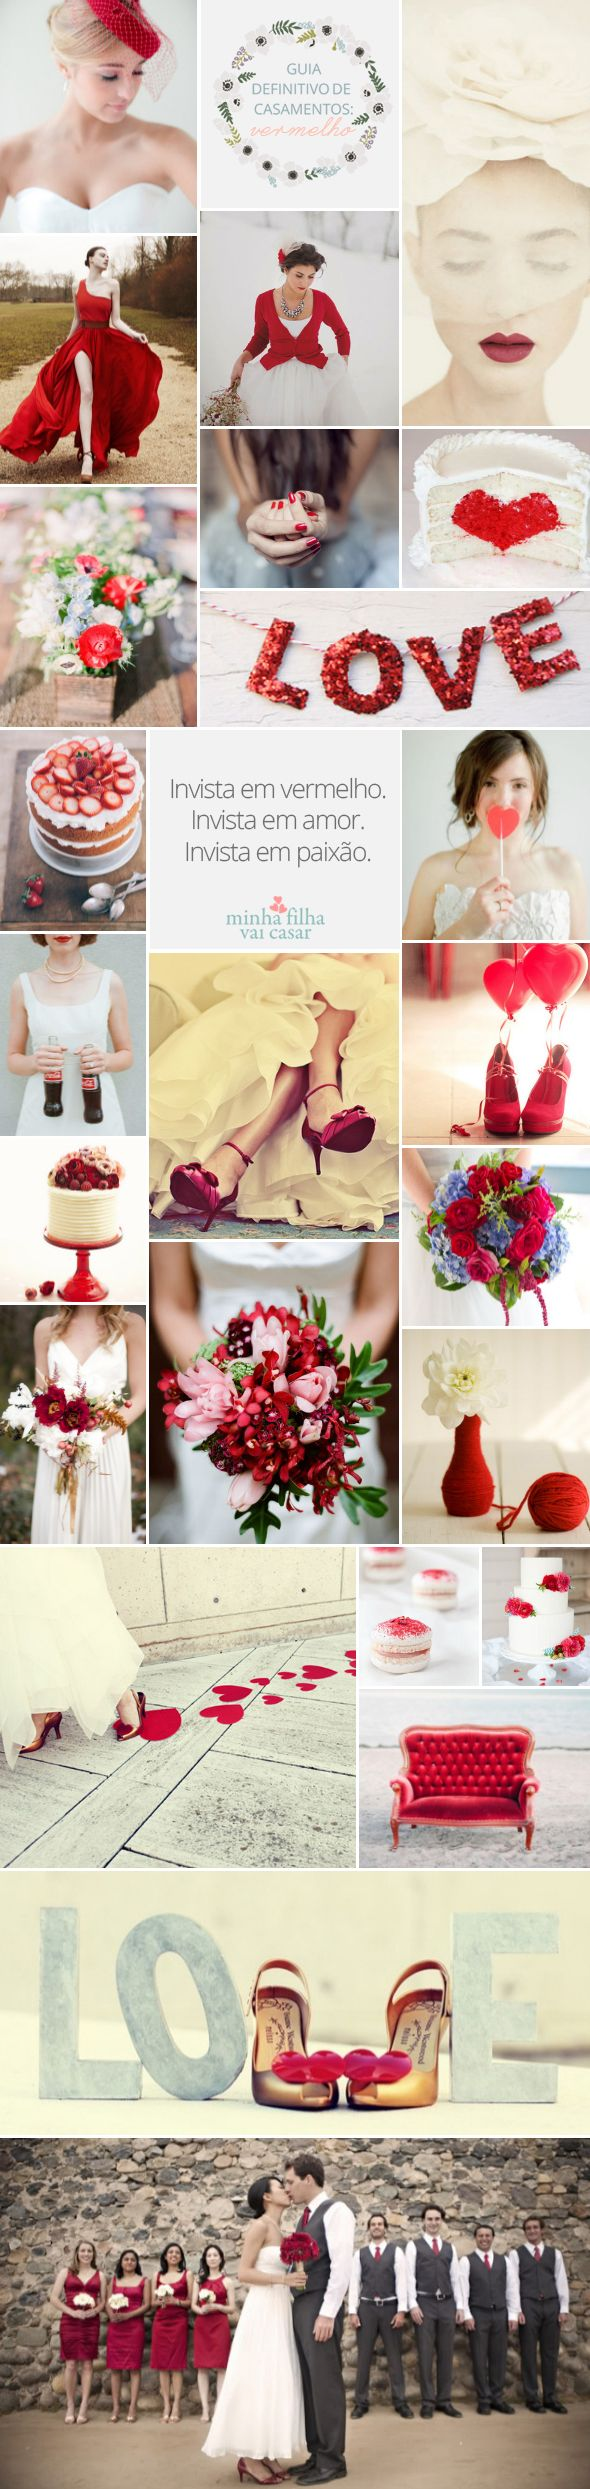 Red Wedding Inspirations, Ideas. | Let us help plan all the details for your #Chicago wedding! www.PerfectDayWeddingPlanners.com